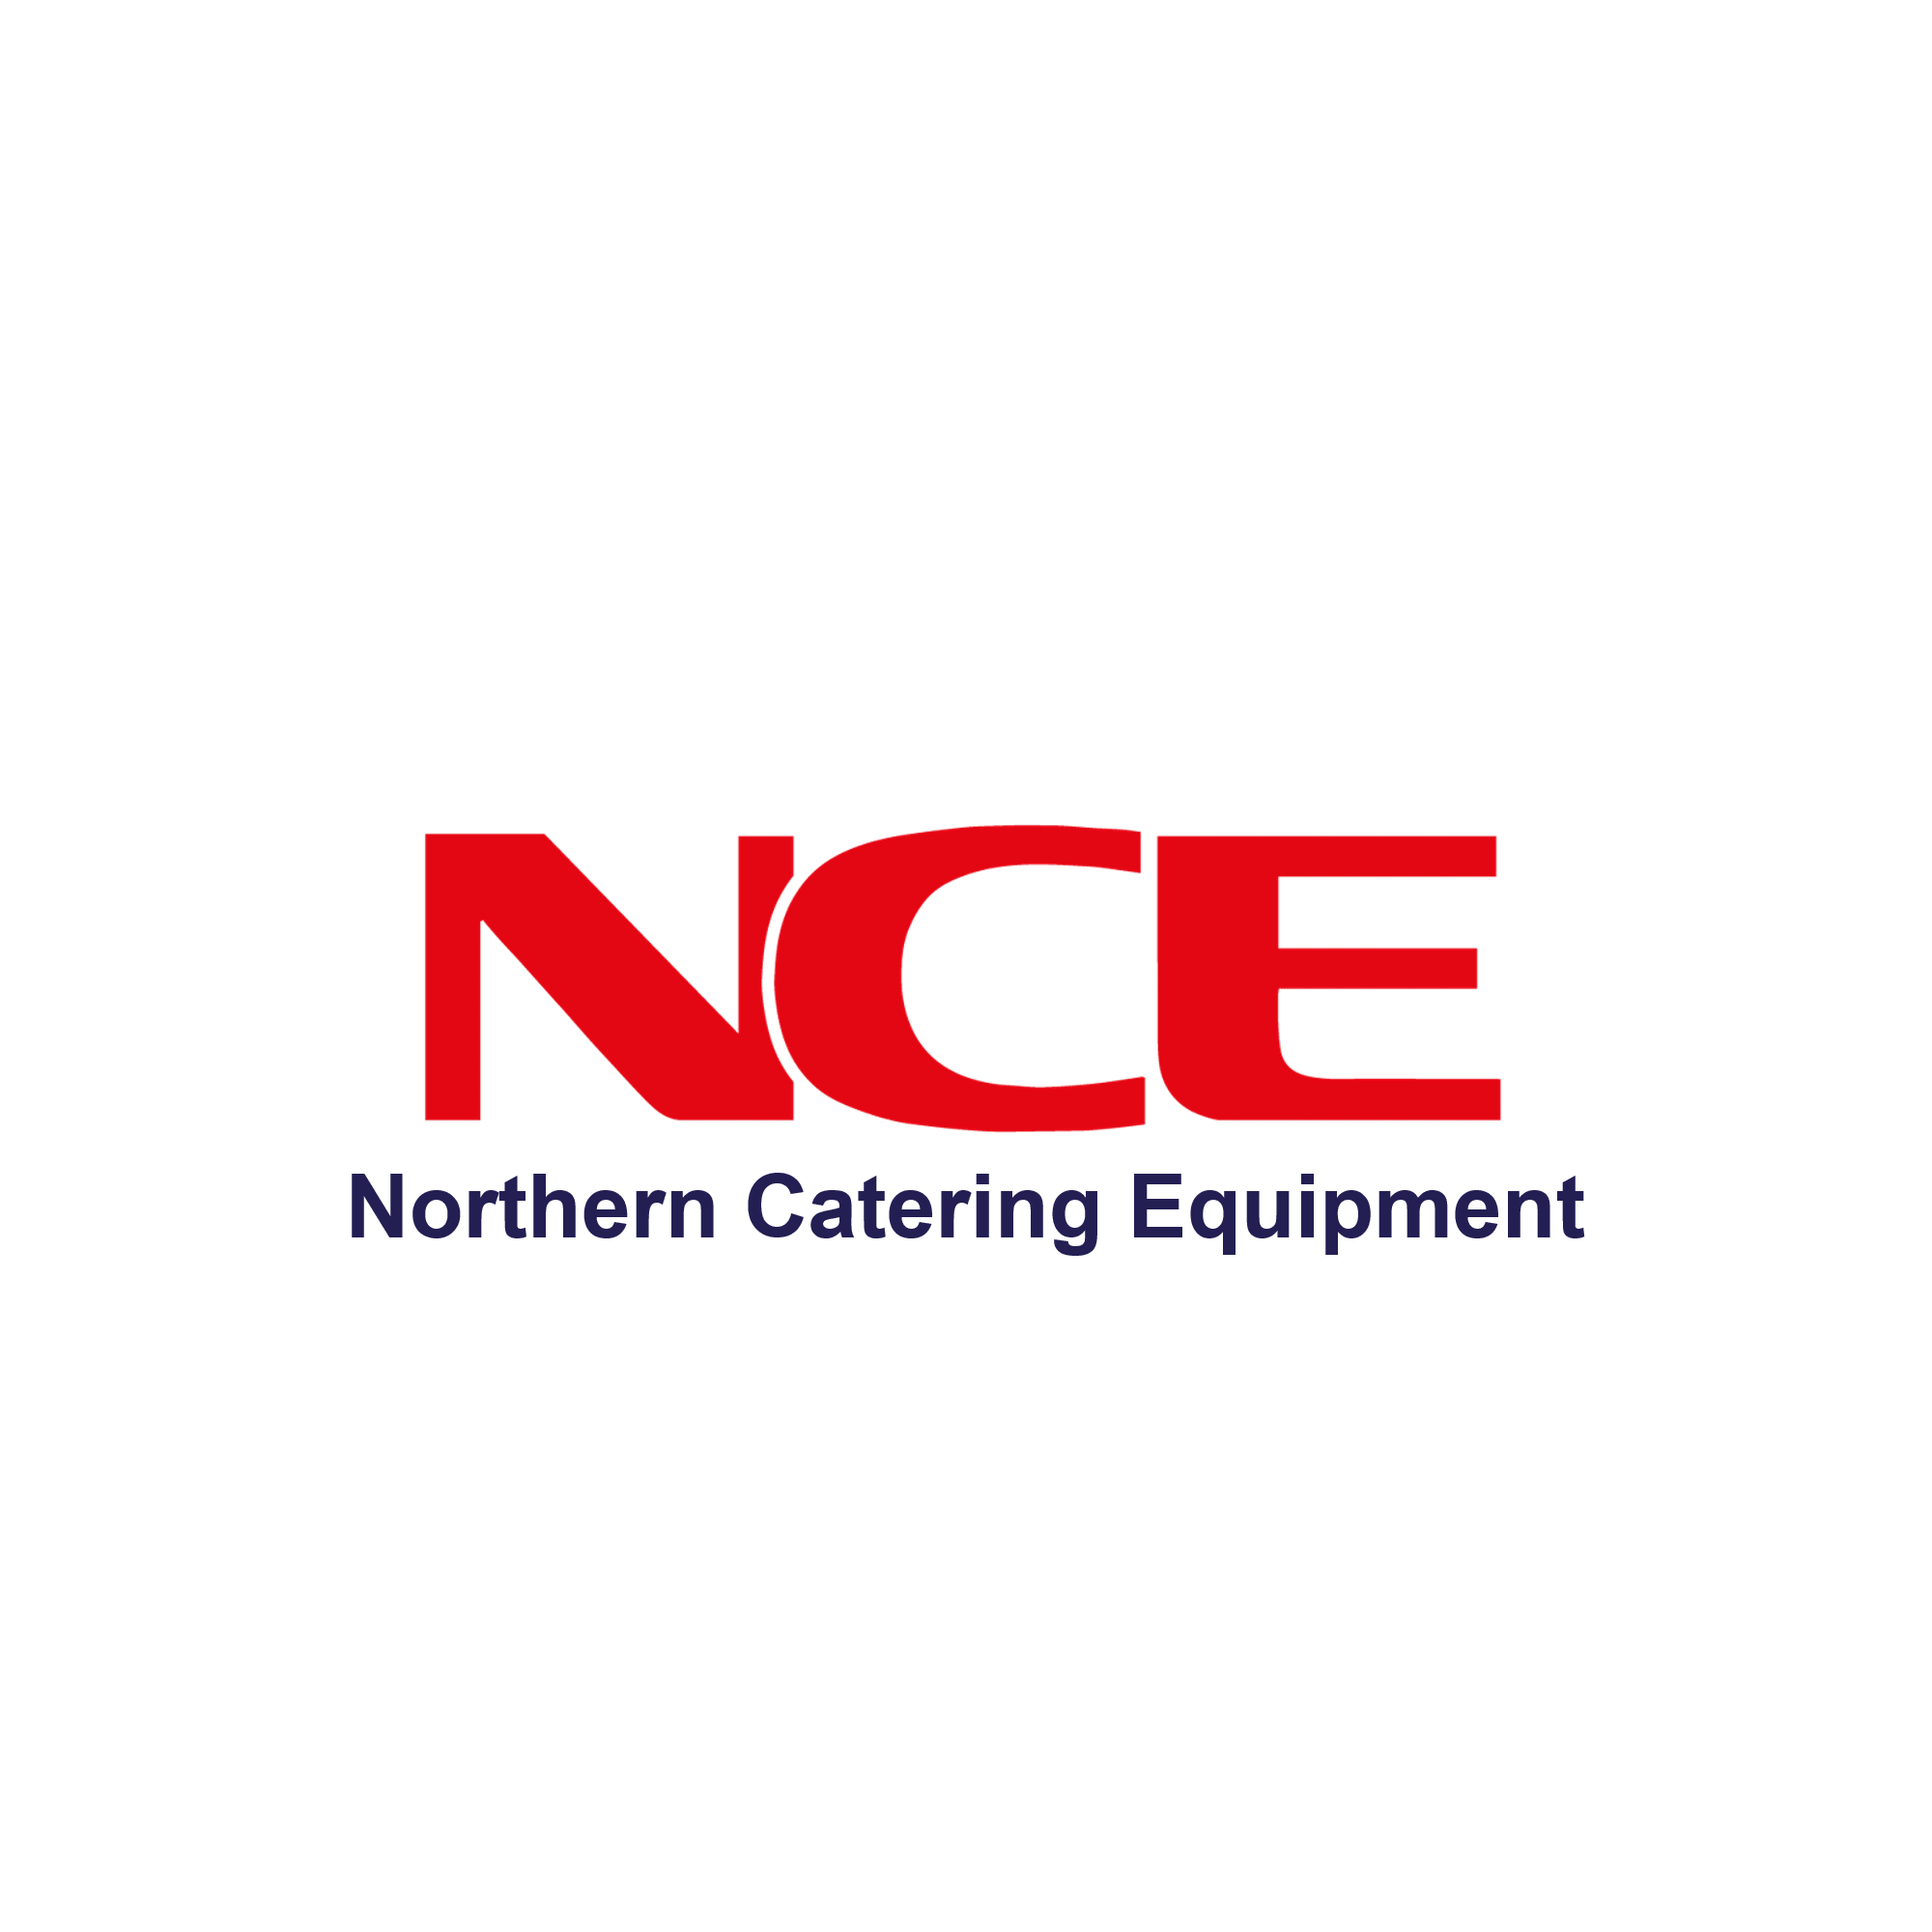 Northern Catering Equipment